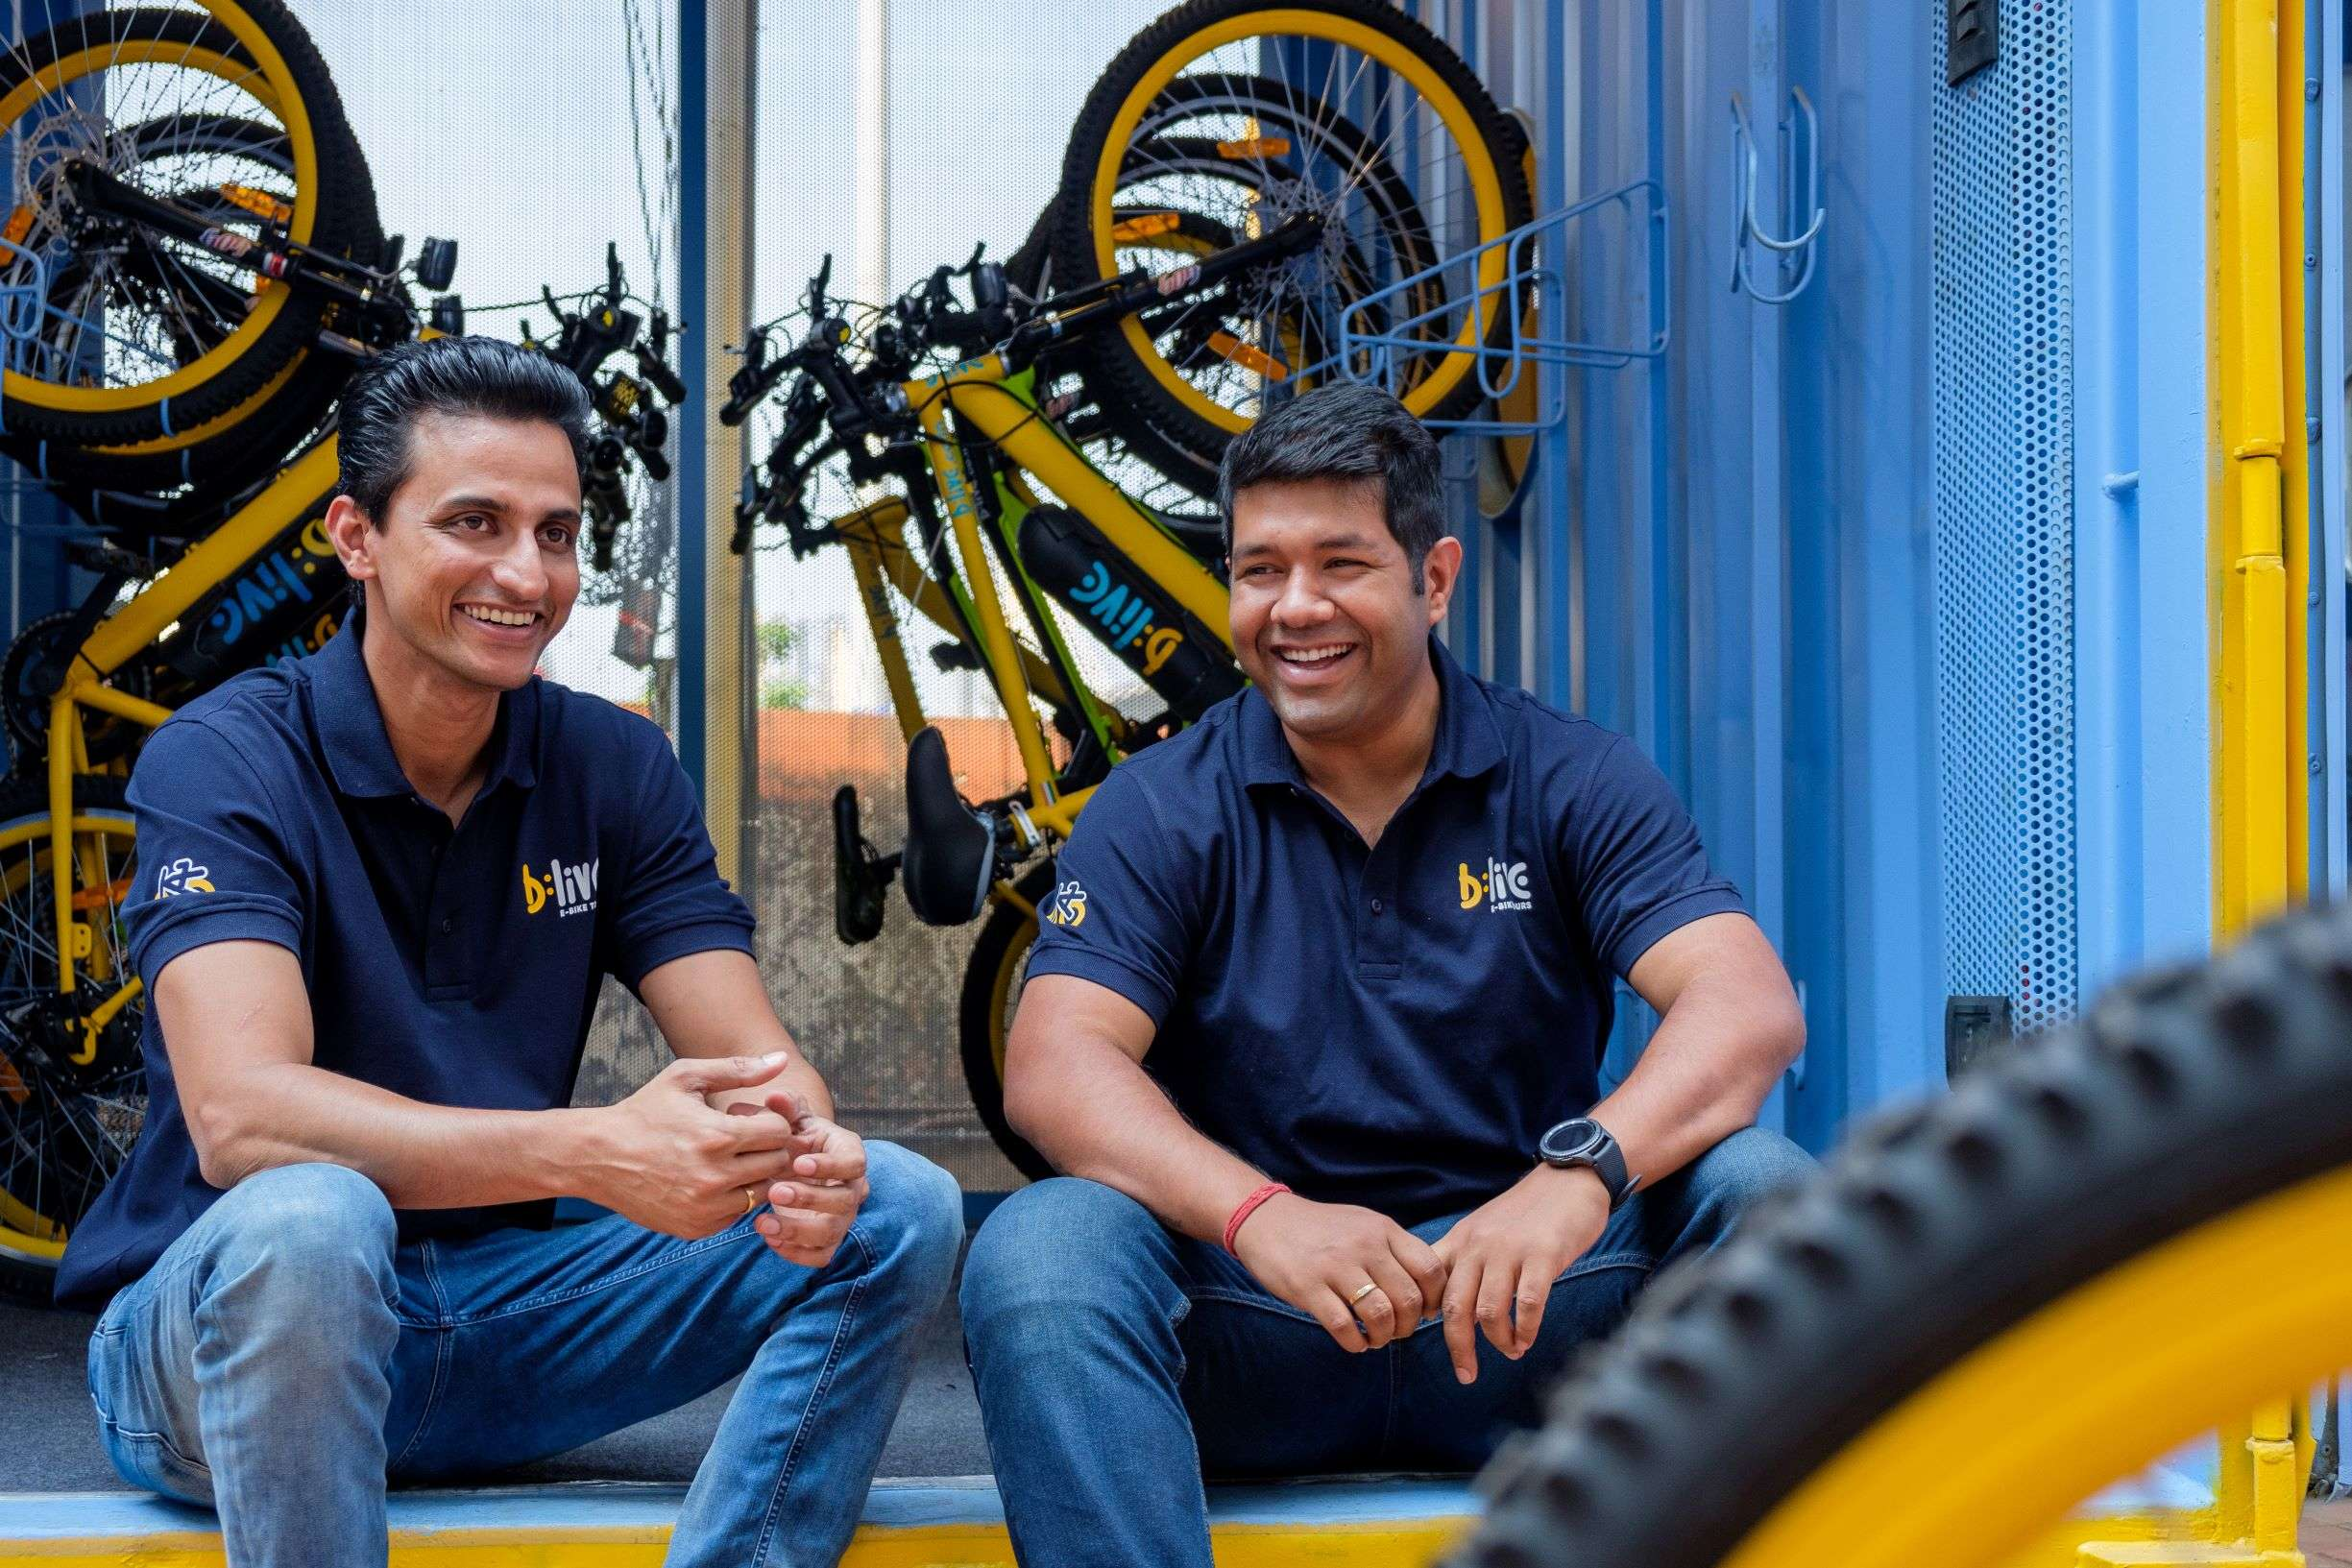 """A travel tech platform that offers immersive experiential tours powered by smart and savvy electric bikes, is how BLive defines itself. Co-founded by Samarth Kholkar and Sandeep Mukherjee, the brand is also an Airbnb Experiences host, and says that listing on Airbnb gives them the """"much-needed visibility"""" to take their initiative to a wider audience, as a startup."""